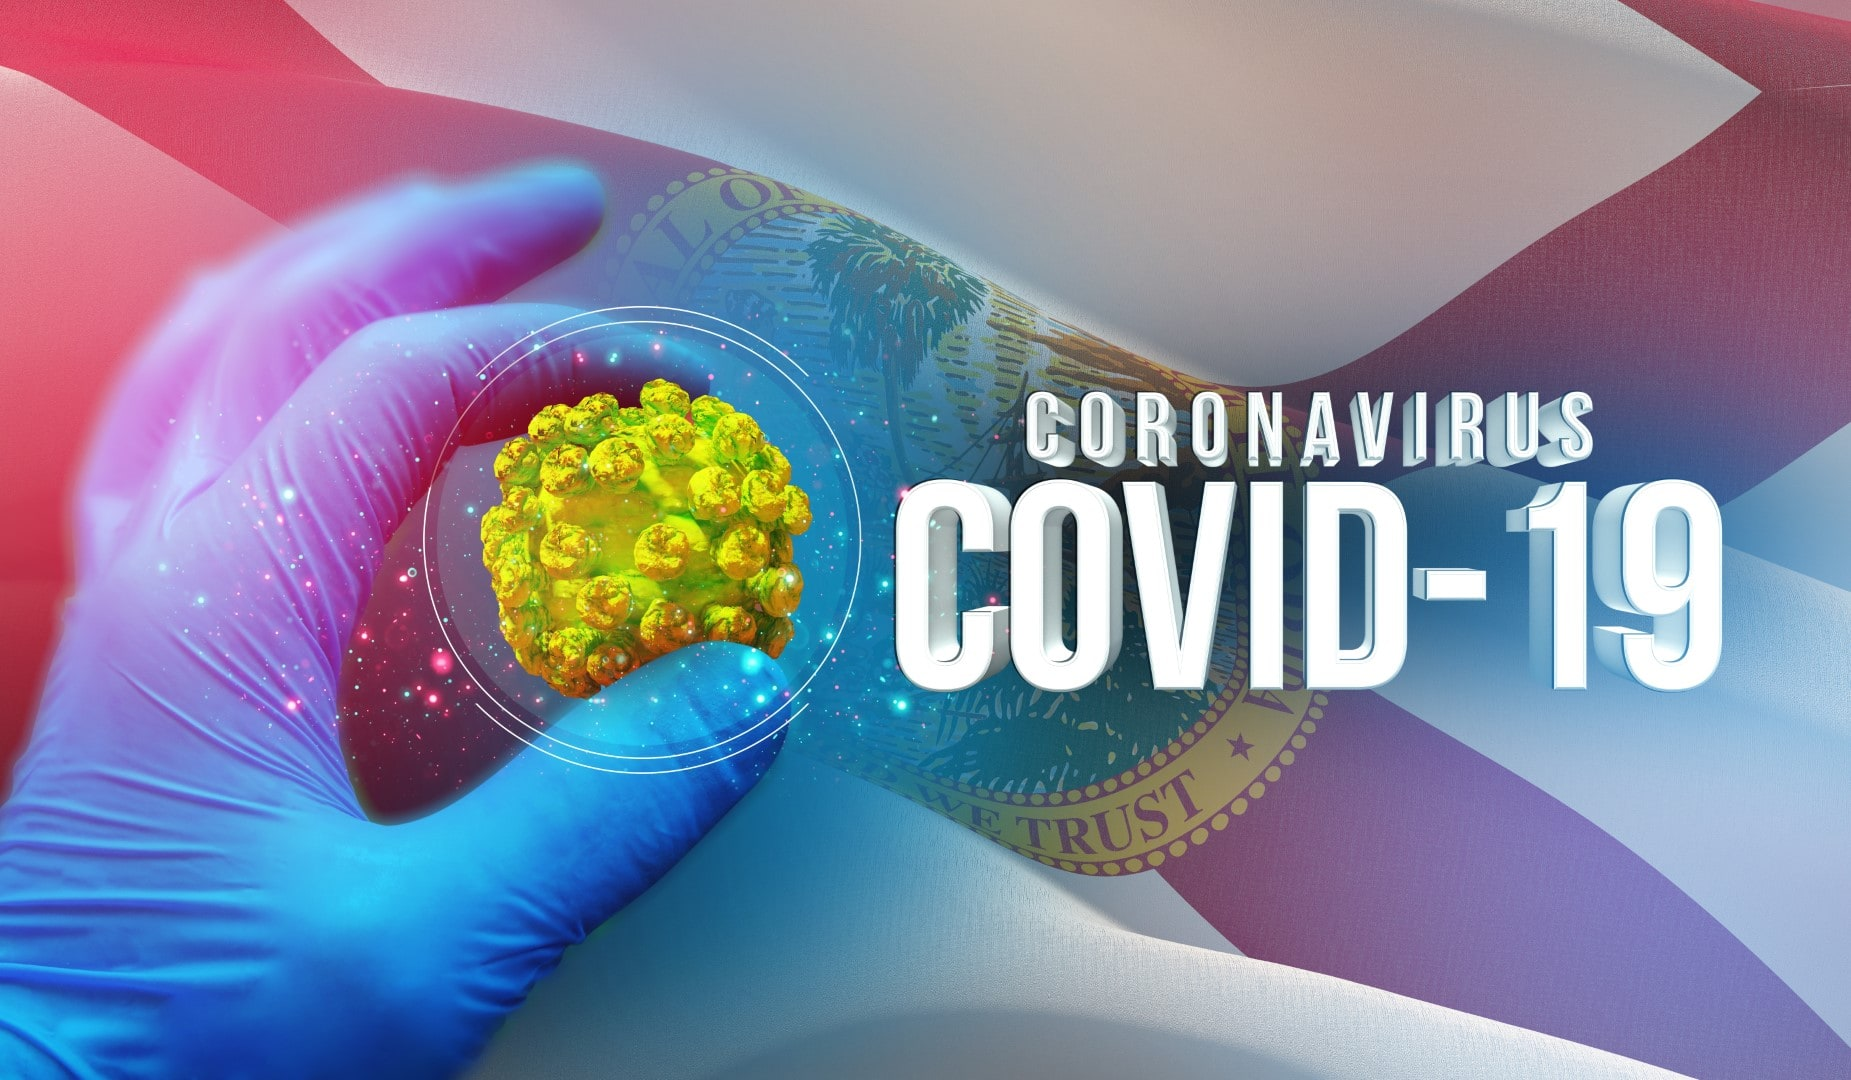 Coronavirus COVID-19 outbreak concept, background with flags of the states of USA. State of Florida flag. Pandemic stop Novel Coronavirus outbreak covid-19 3D illustration.